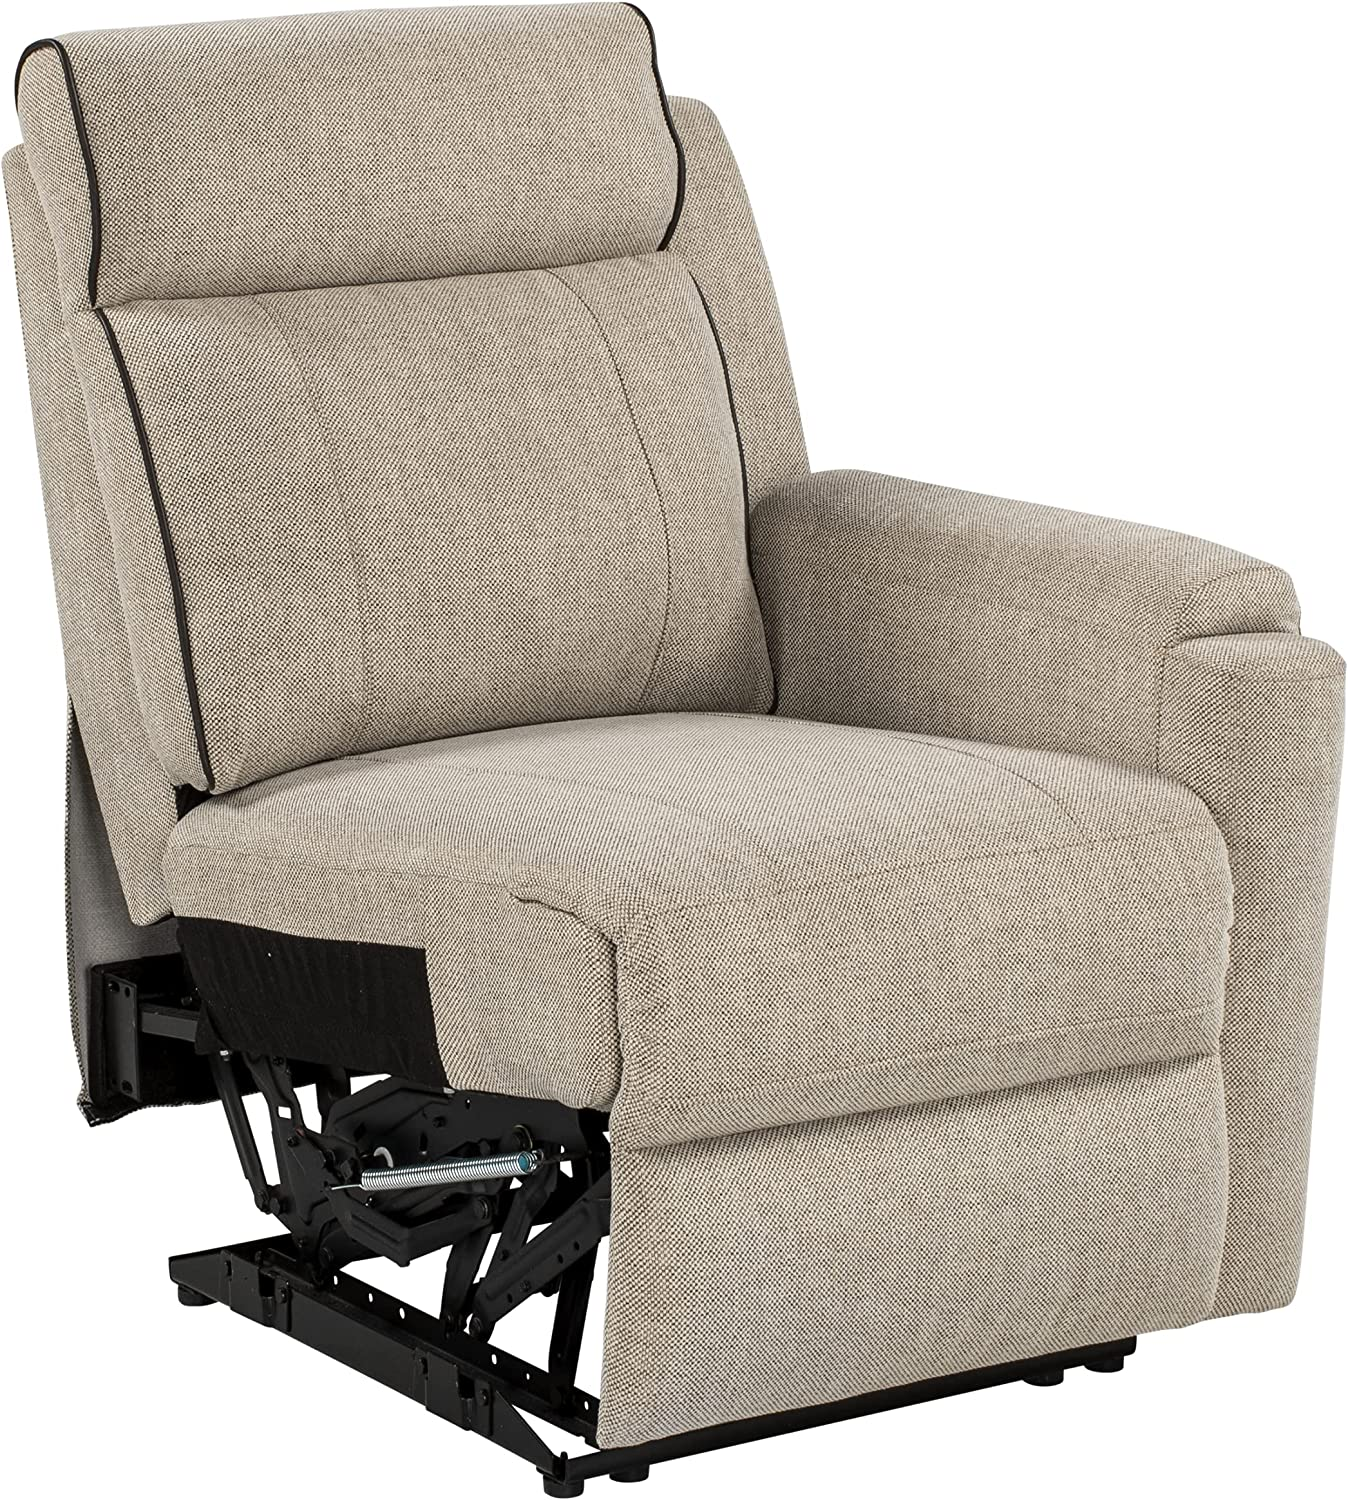 THOMAS PAYNE Heritage Series Theater Seating Collection Left Hand Recliner for 5th Wheel RVs, Travel Trailers and Motorhomes